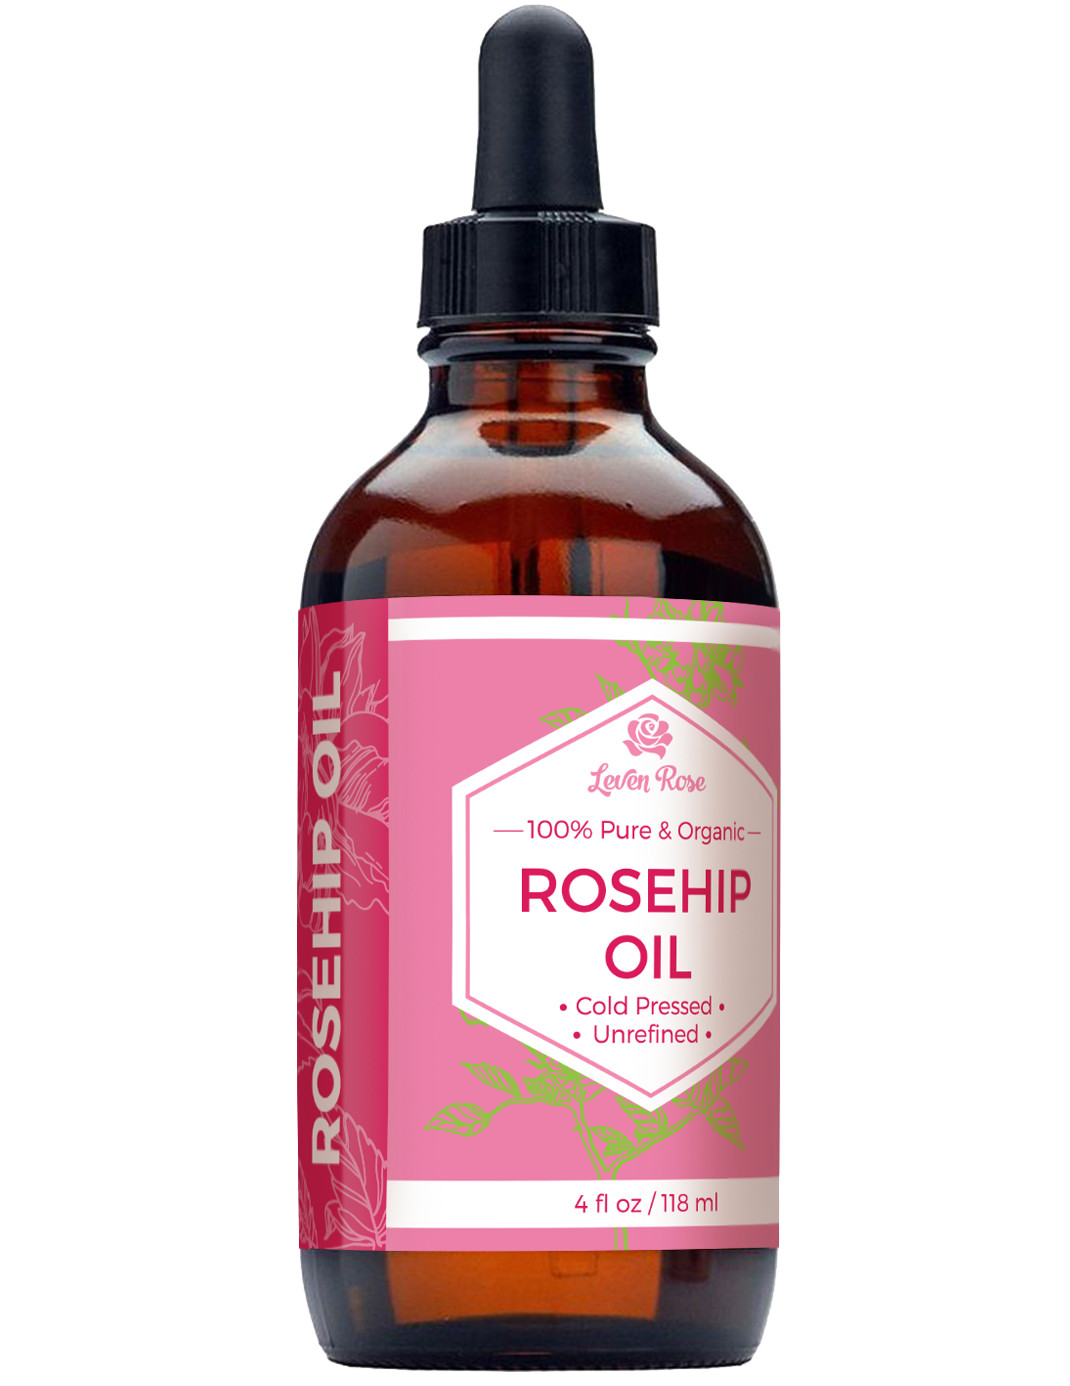 Leven Rose Rosehip Seed Oil